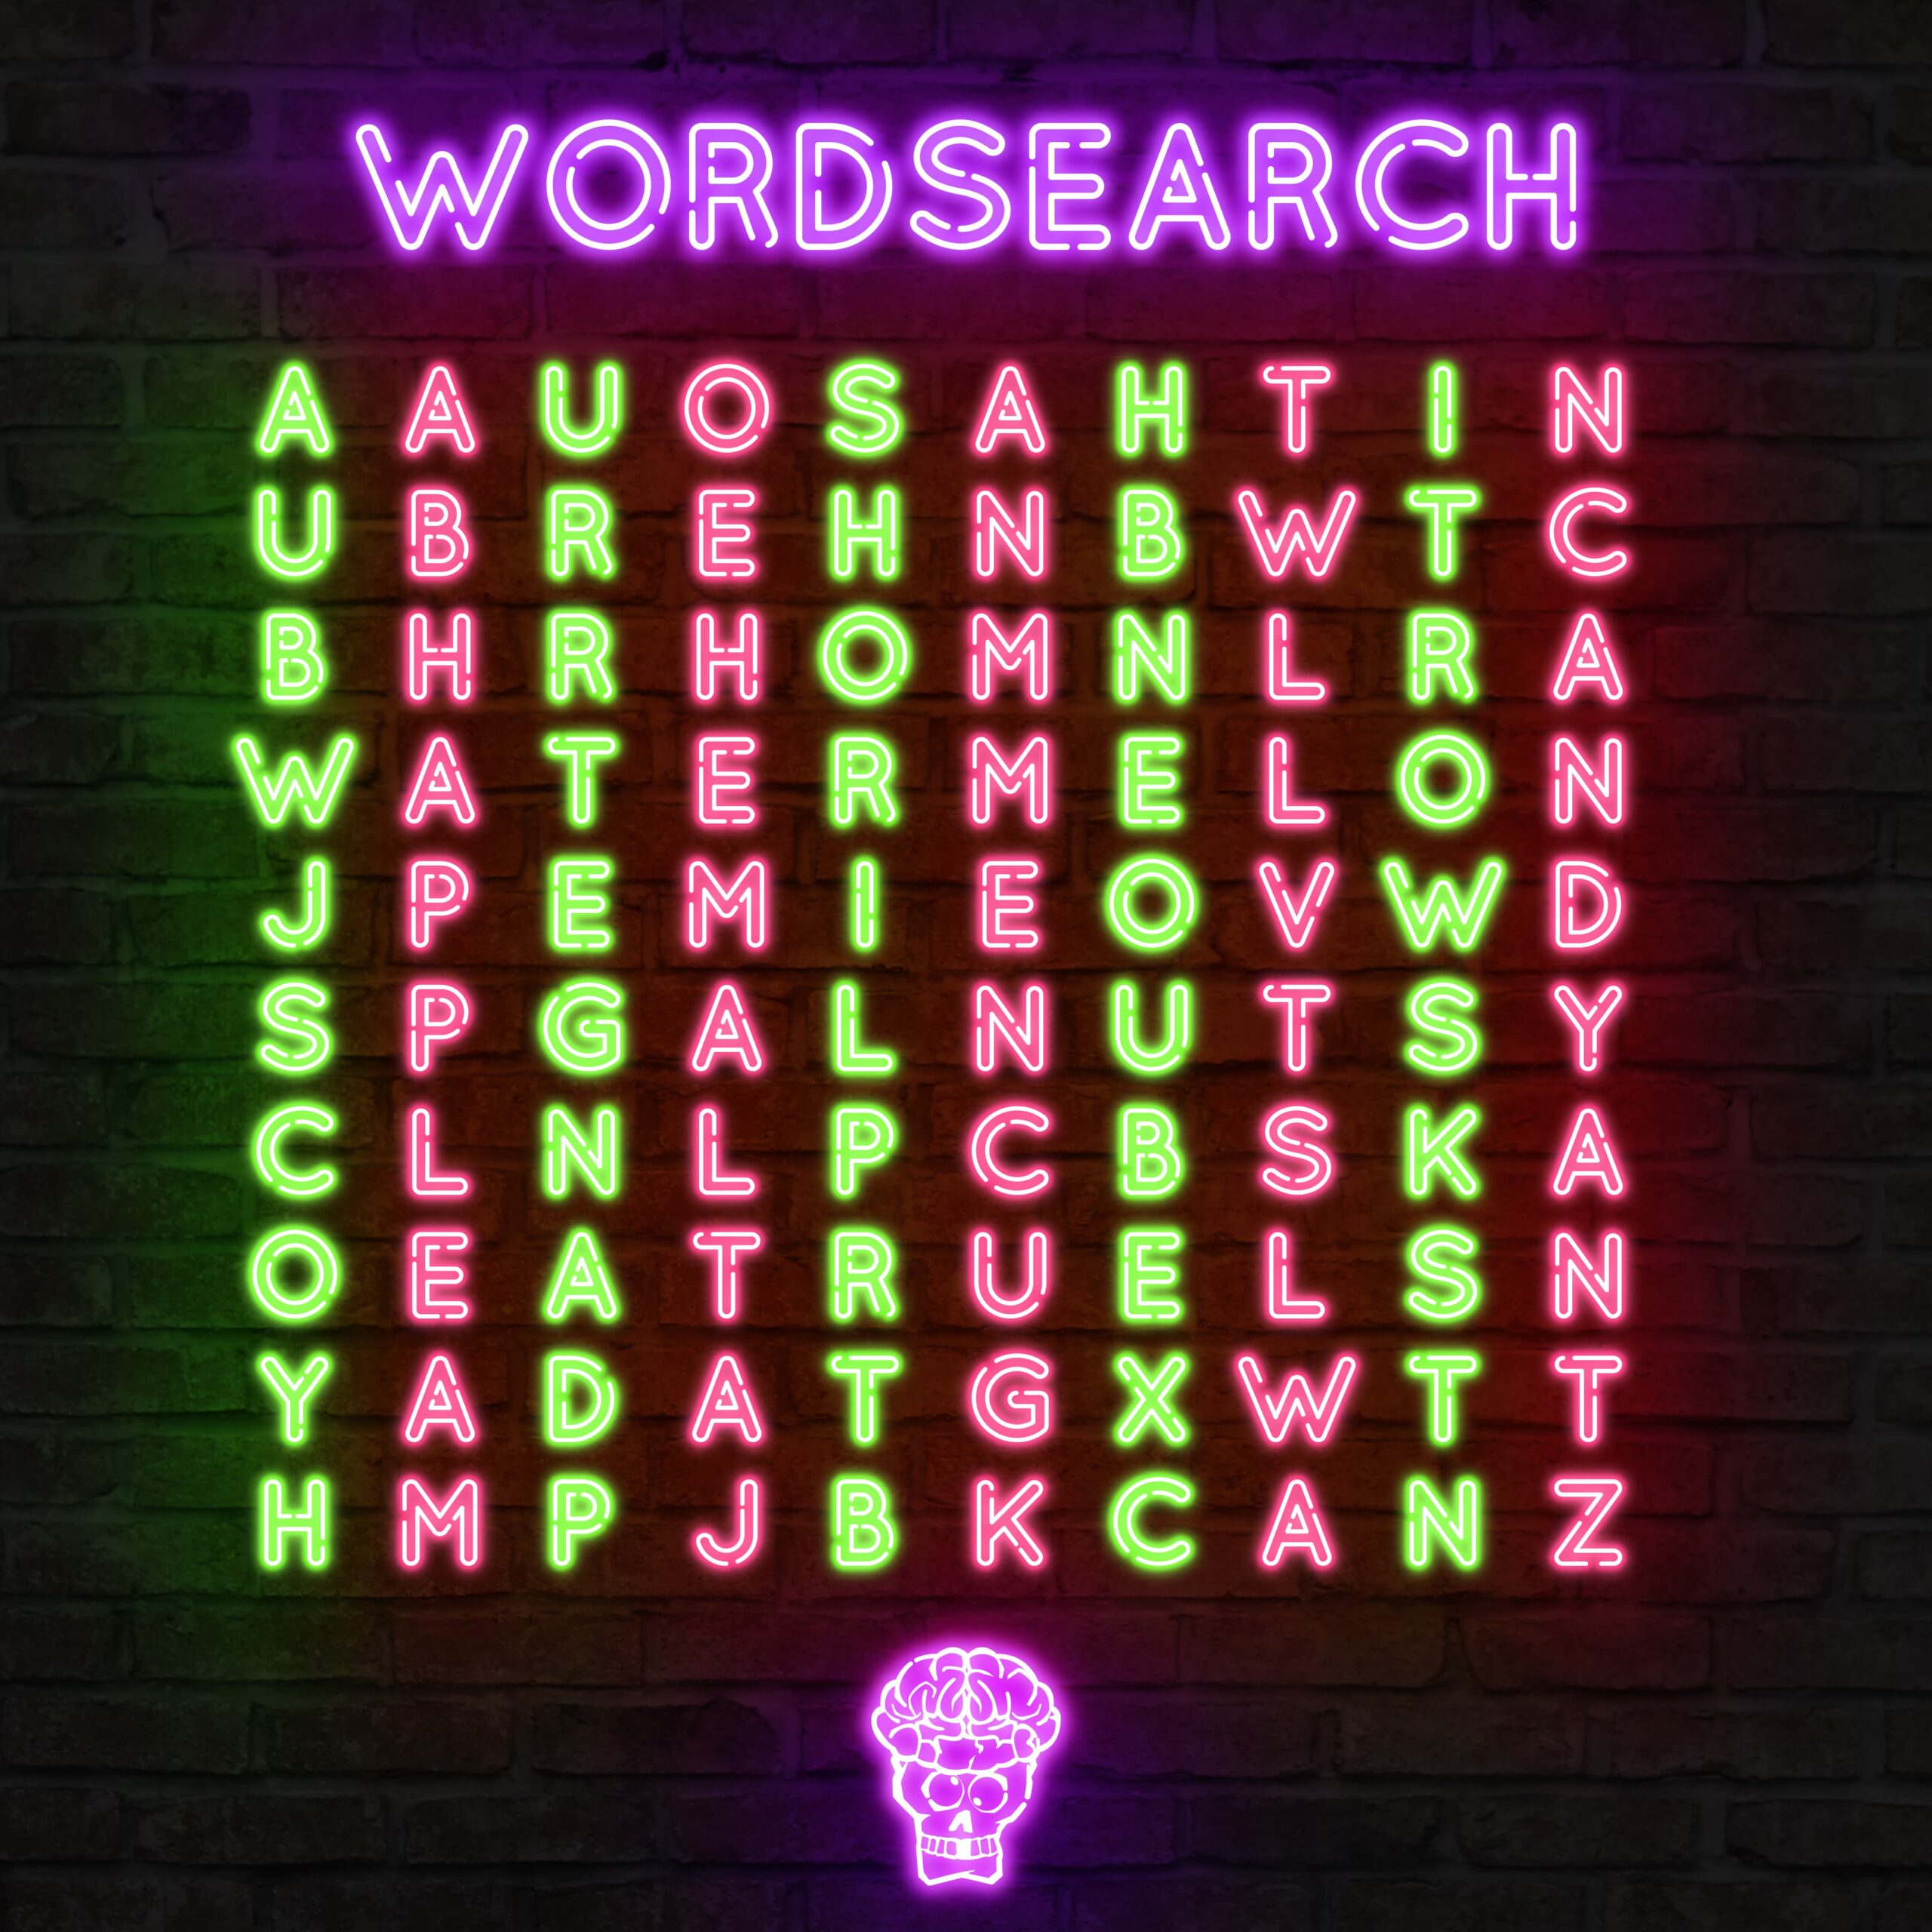 WORDSEARCH apple candy watermelon 01 min